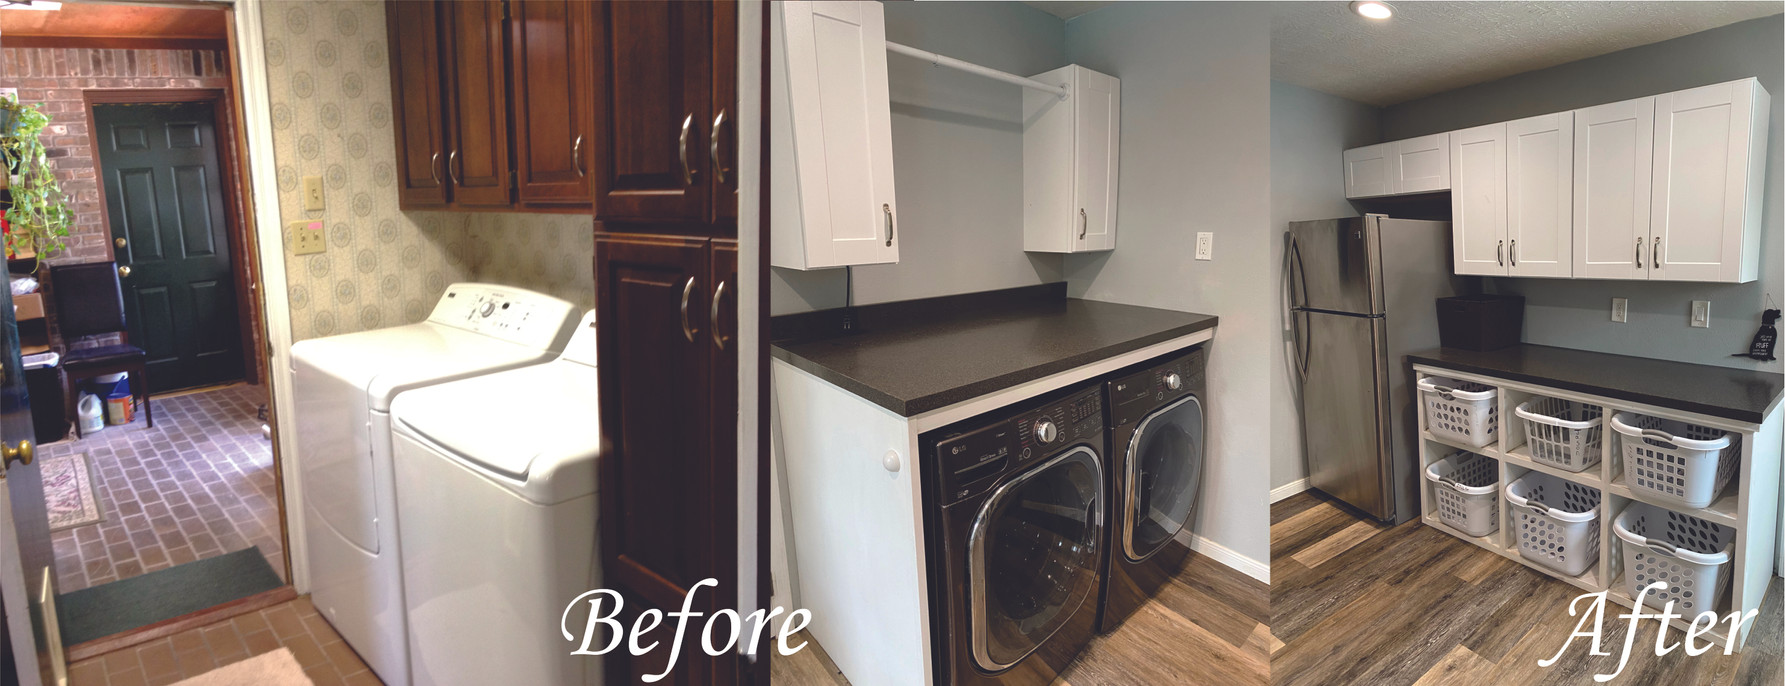 Laundry Room 1 - Before and After